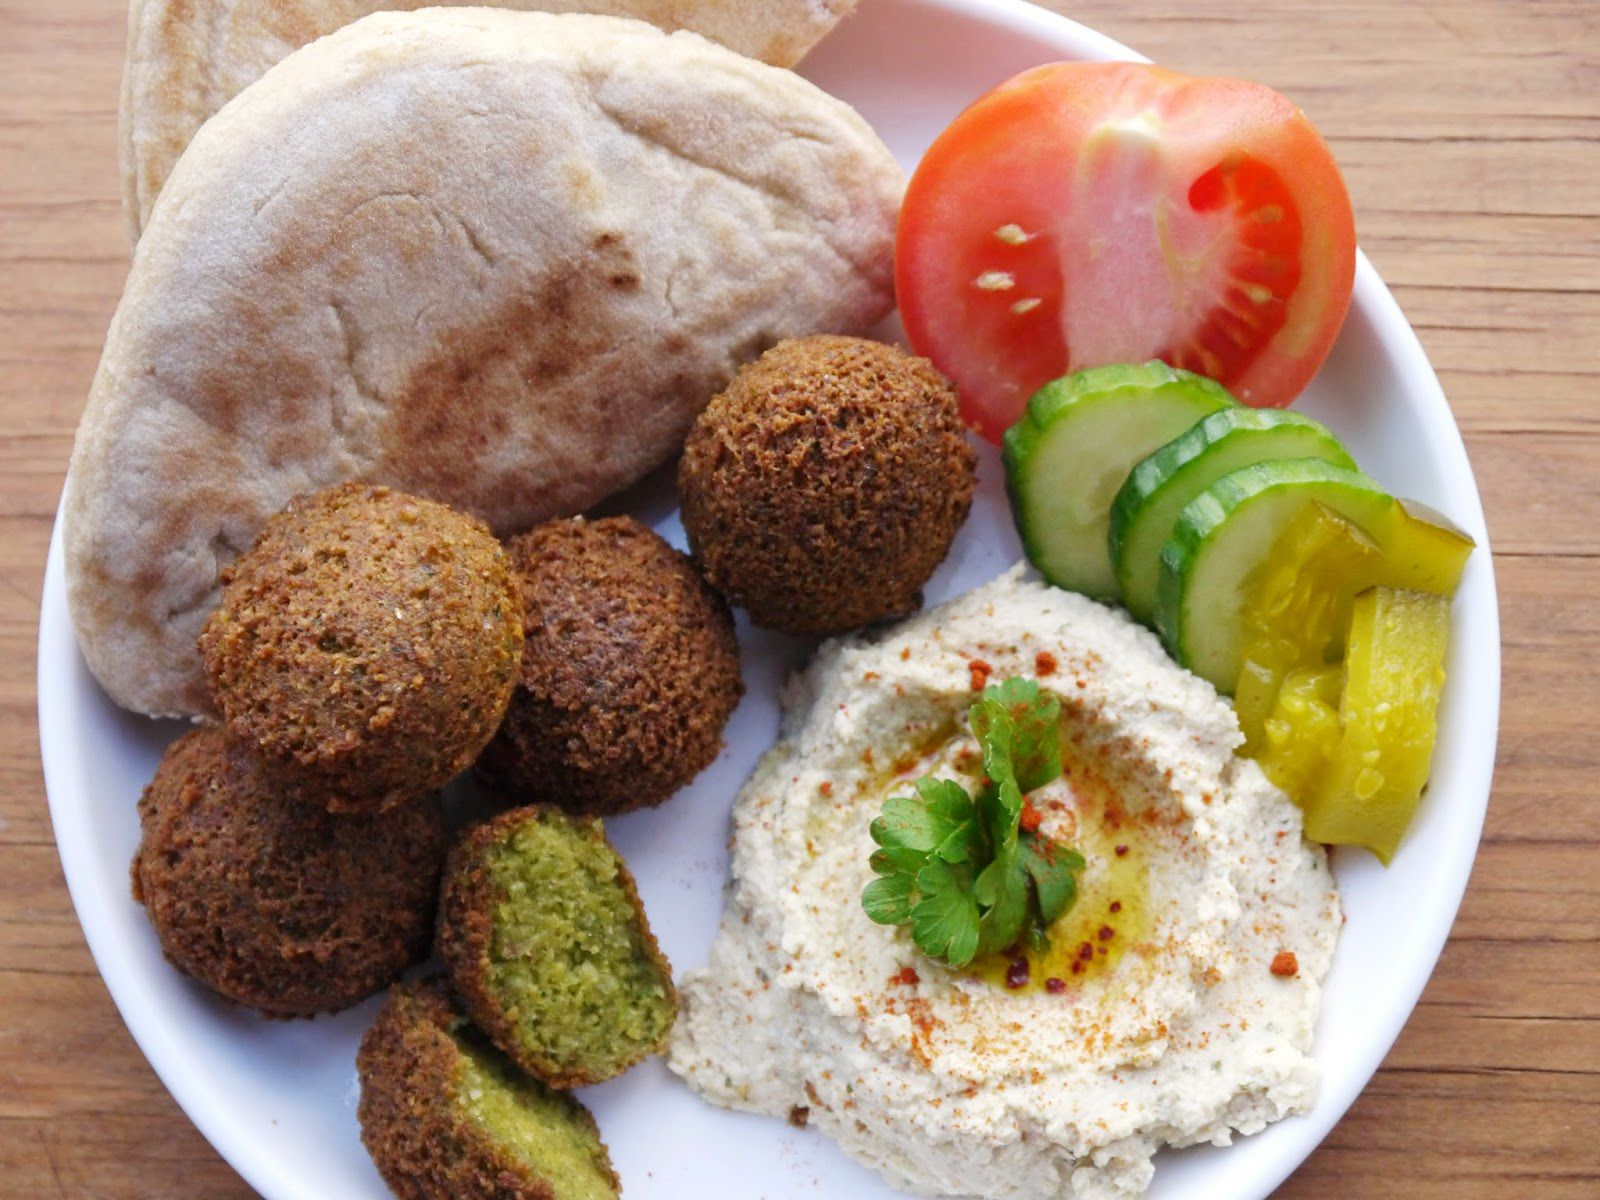 Middle Eastern Home Decor Fixes For Homemade Falafel Fails